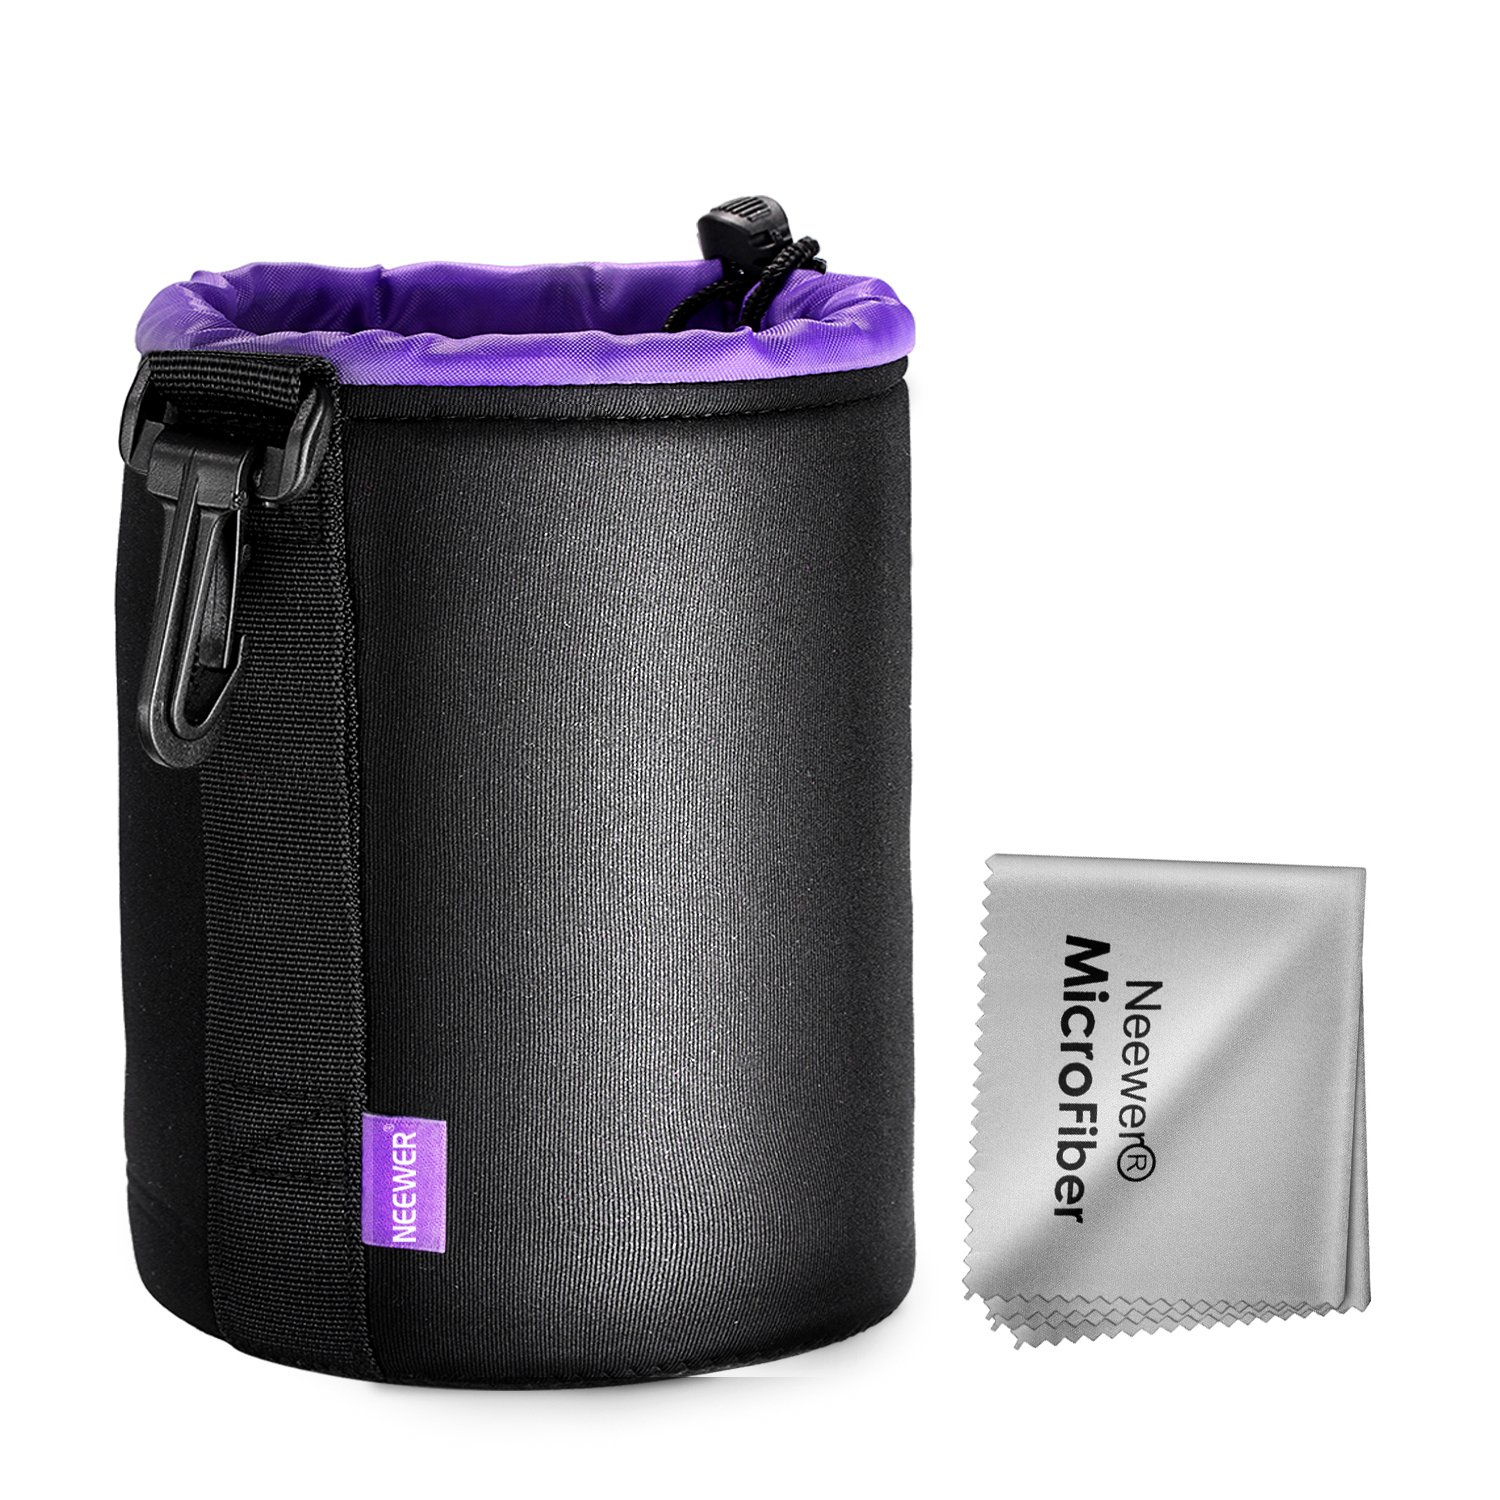 Neewer Small Lens Pouch Bag, 3x3x4.5 inches/8x8x11.5 centimeters Durable Neoprene Bag, for Canon Nikon Pentax Sony Olympus Panasonic Vivitar Minolta Mamiya Yashica Kodak DSLR Cameras(Purple Interior) 10089022